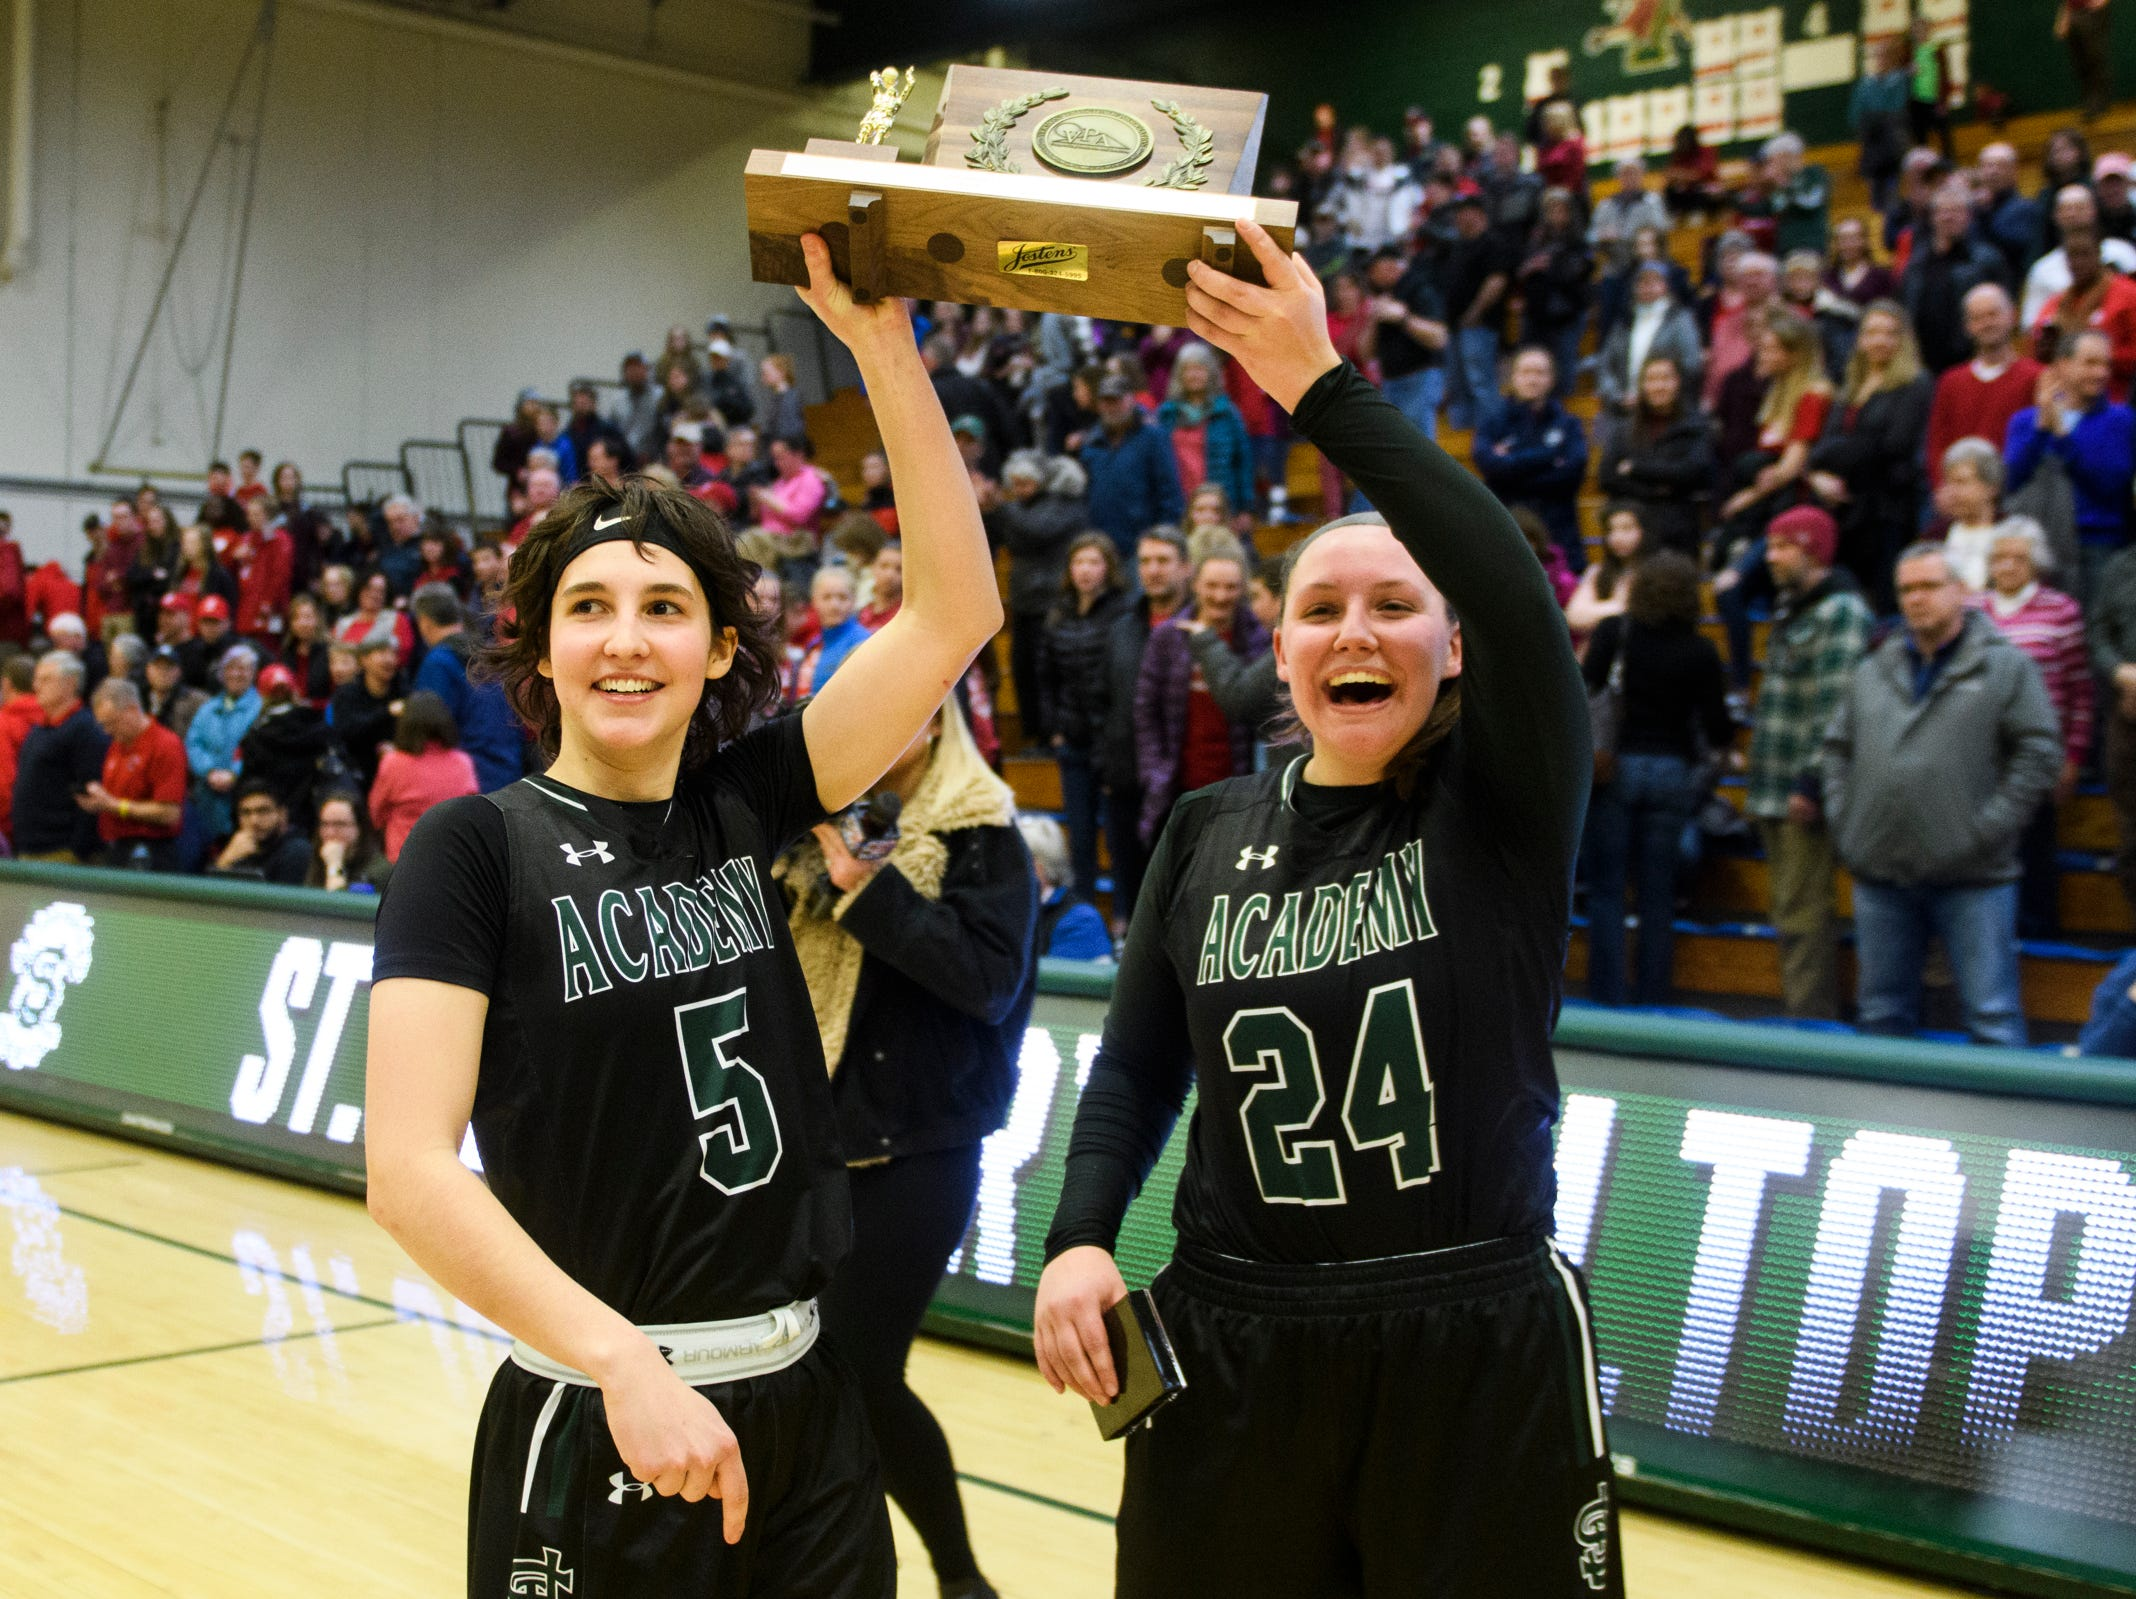 St. Johnsbury captains Sadie Stetson (5) and Josie Choiniere (24) hold up the championship trophy during the division I girls basketball championship basketball game between the St. Johnsbury Hilltoppers and the Champlain Valley Union Redhawks at Patrick Gym on Sunday afternoon March 10, 2019 in Burlington, Vermont.